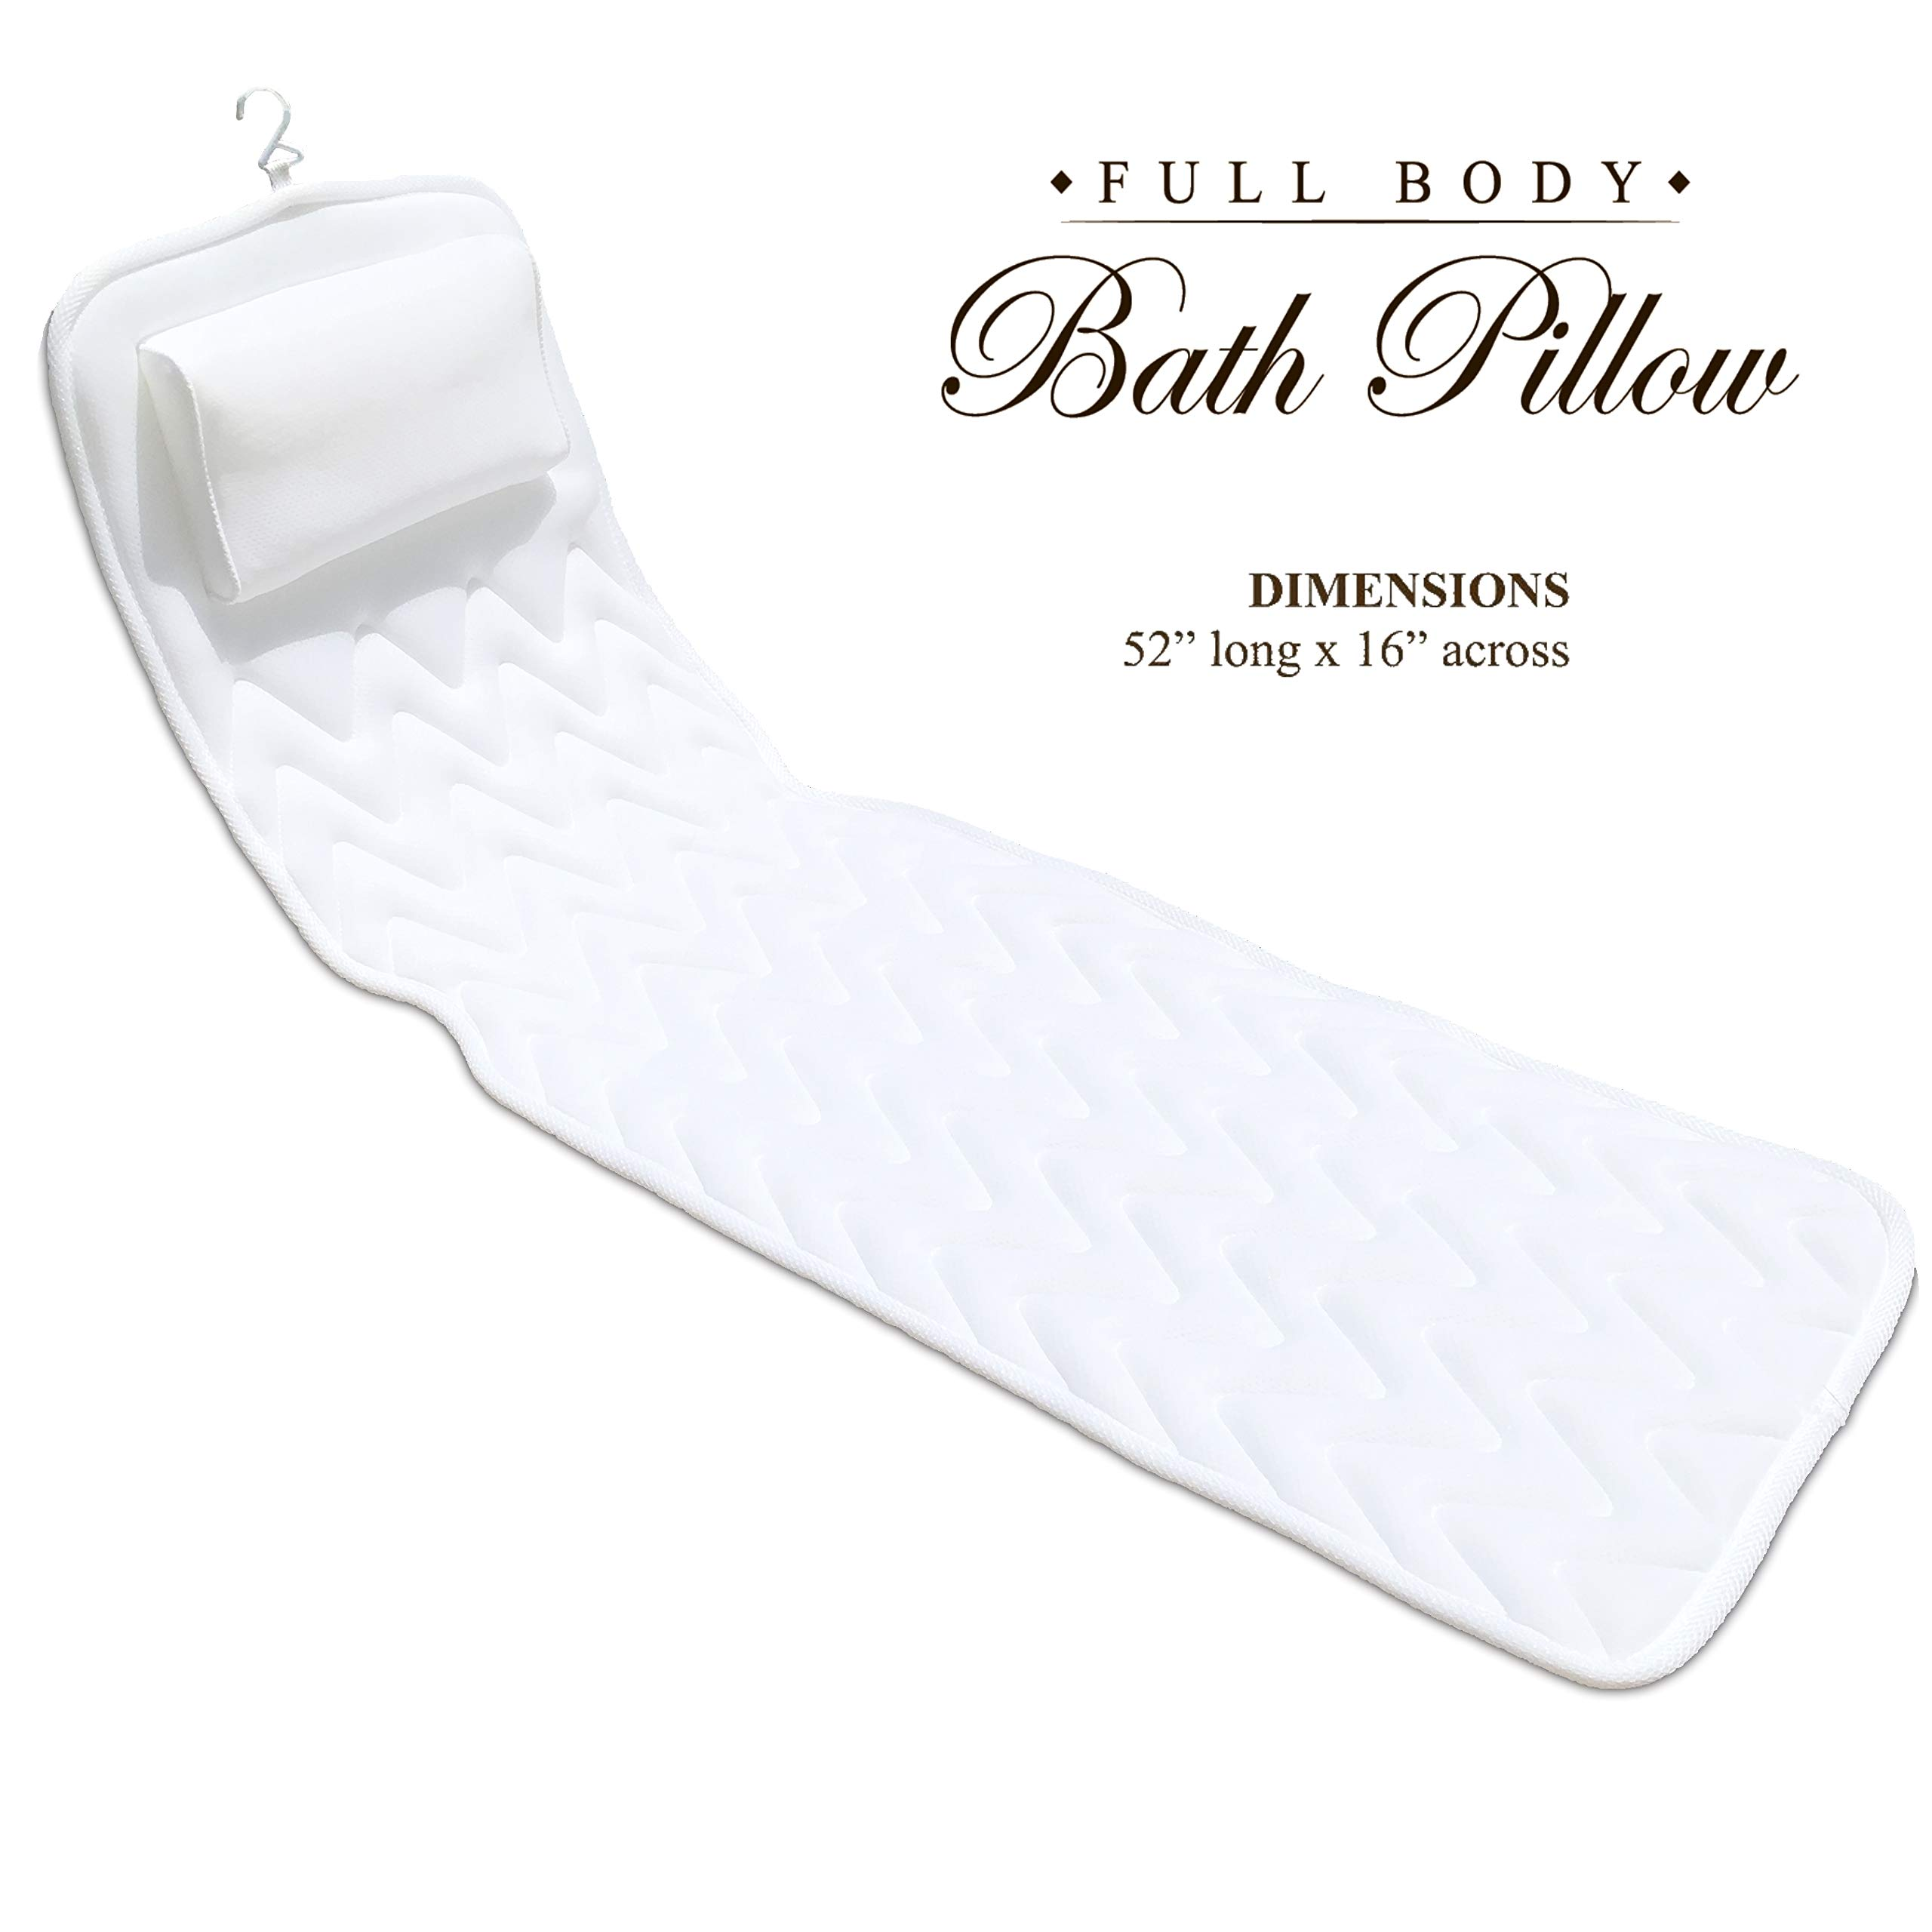 BathLife Full Body Bath Pillow - Plush Quilted Bathtub Mat with 3D Air Mesh Technology, Longer and Wider, Modern and Flexible, Care and Store with Ease!